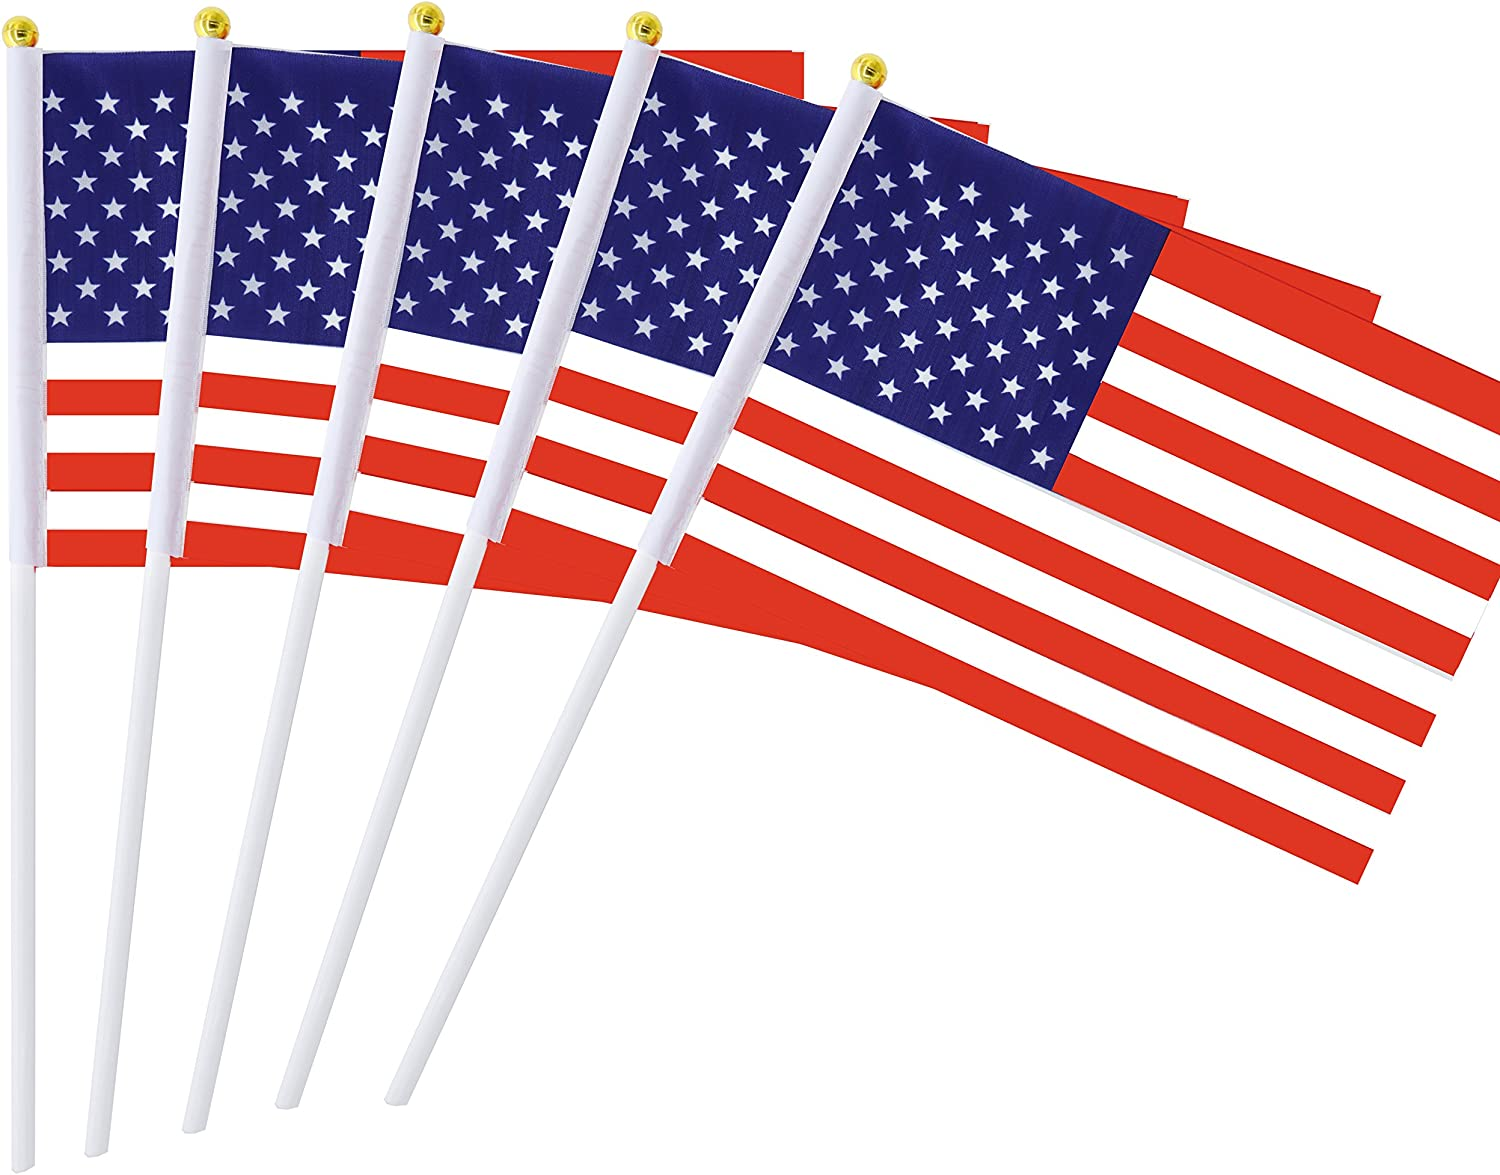 25 Pack Hand Held Small Mini Flag USA US Flag American Flag Stick Flag Round Top National Country Flags,Party Decorations Supplies For Parades,World Cup,Festival Events ,International Festival